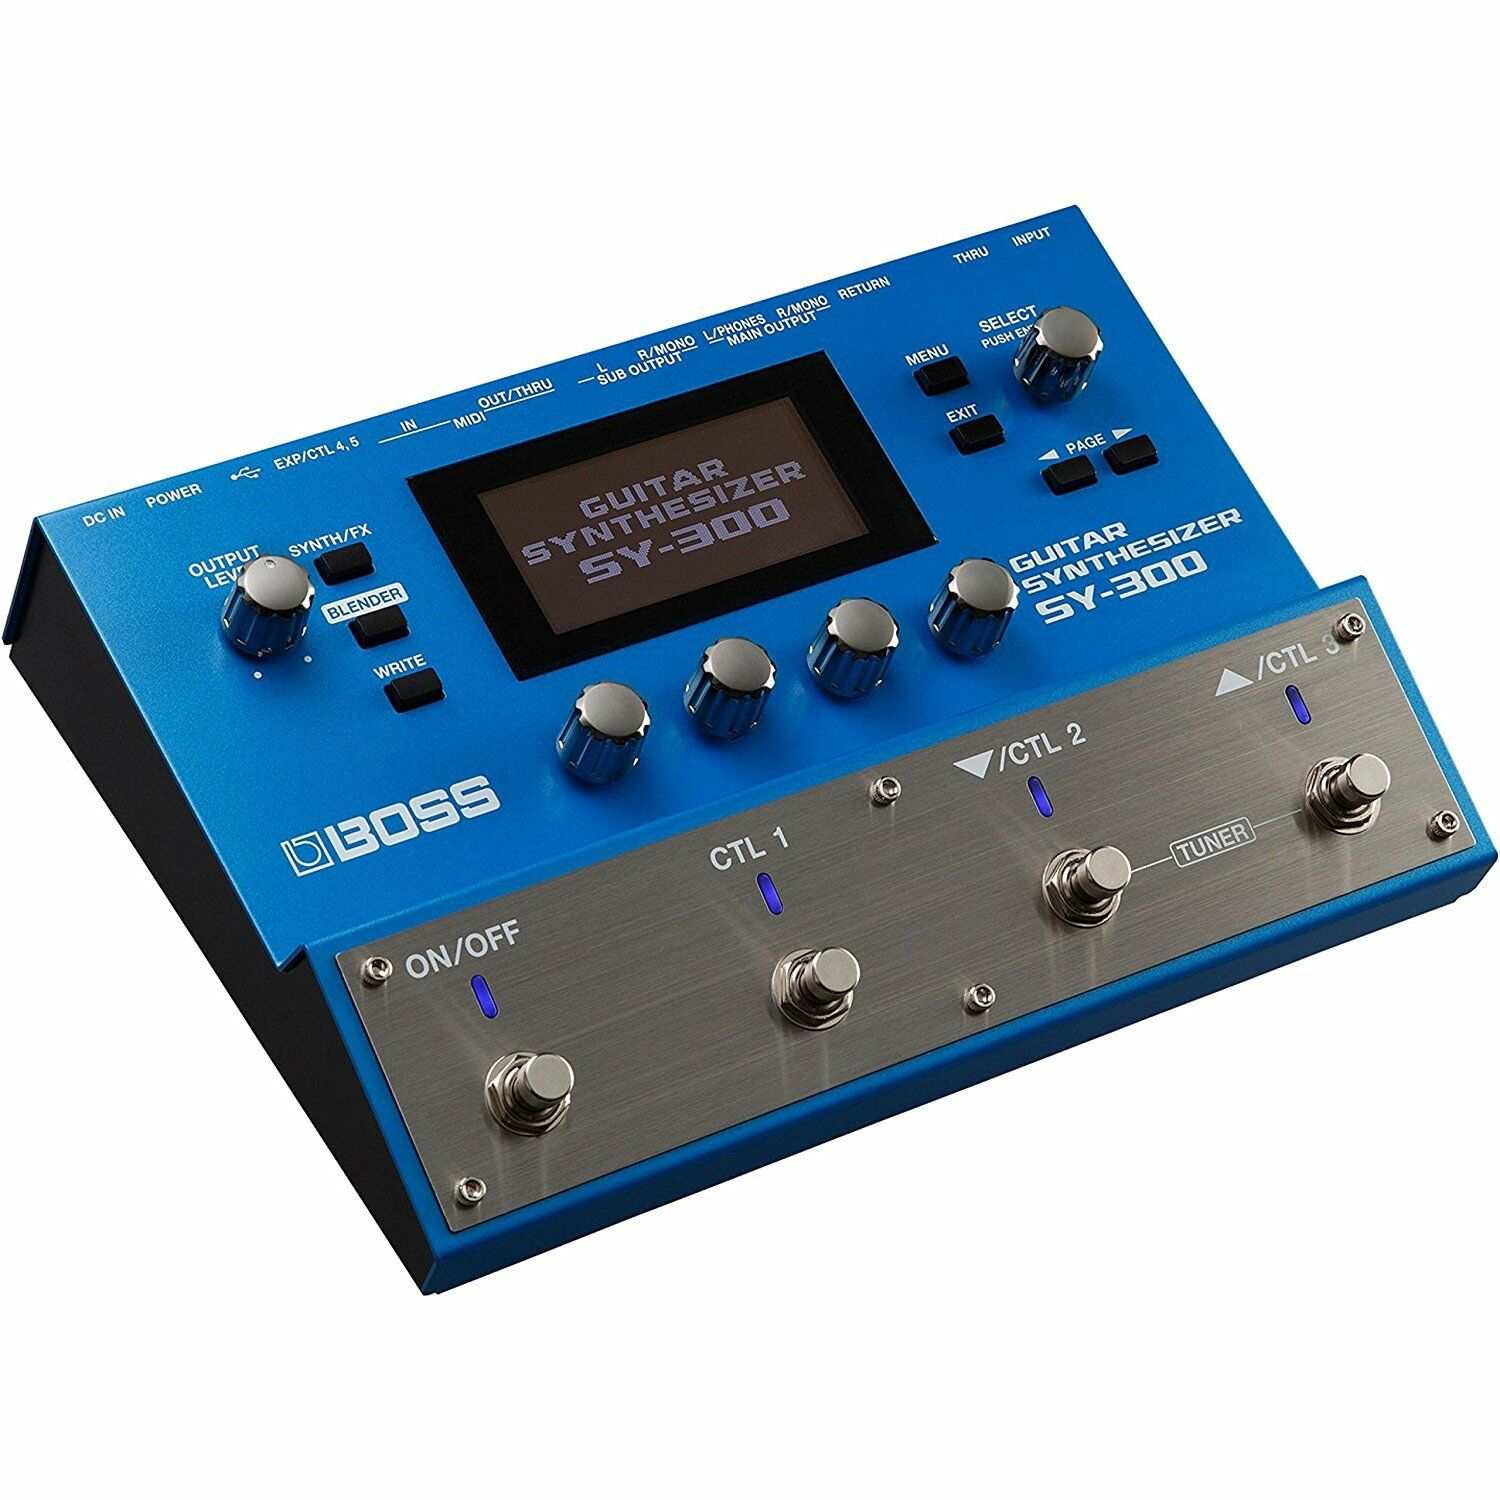 New  BOSS SY-300 Guitar SyntheGrößer Guitar Effects from Japan Import